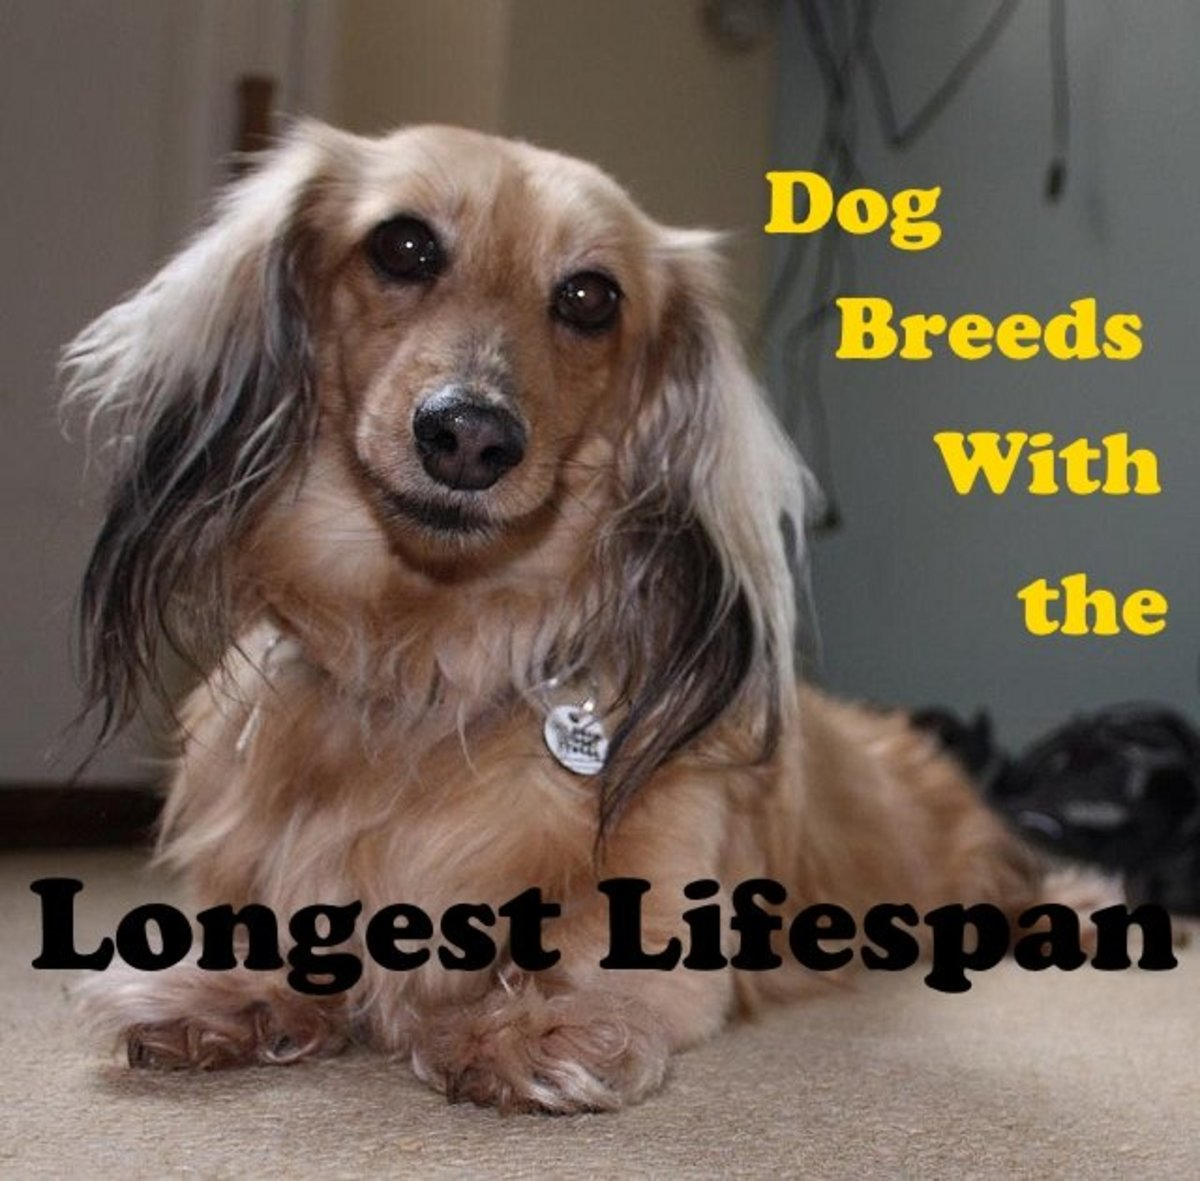 Dachshunds are one of the longest living dog breeds.